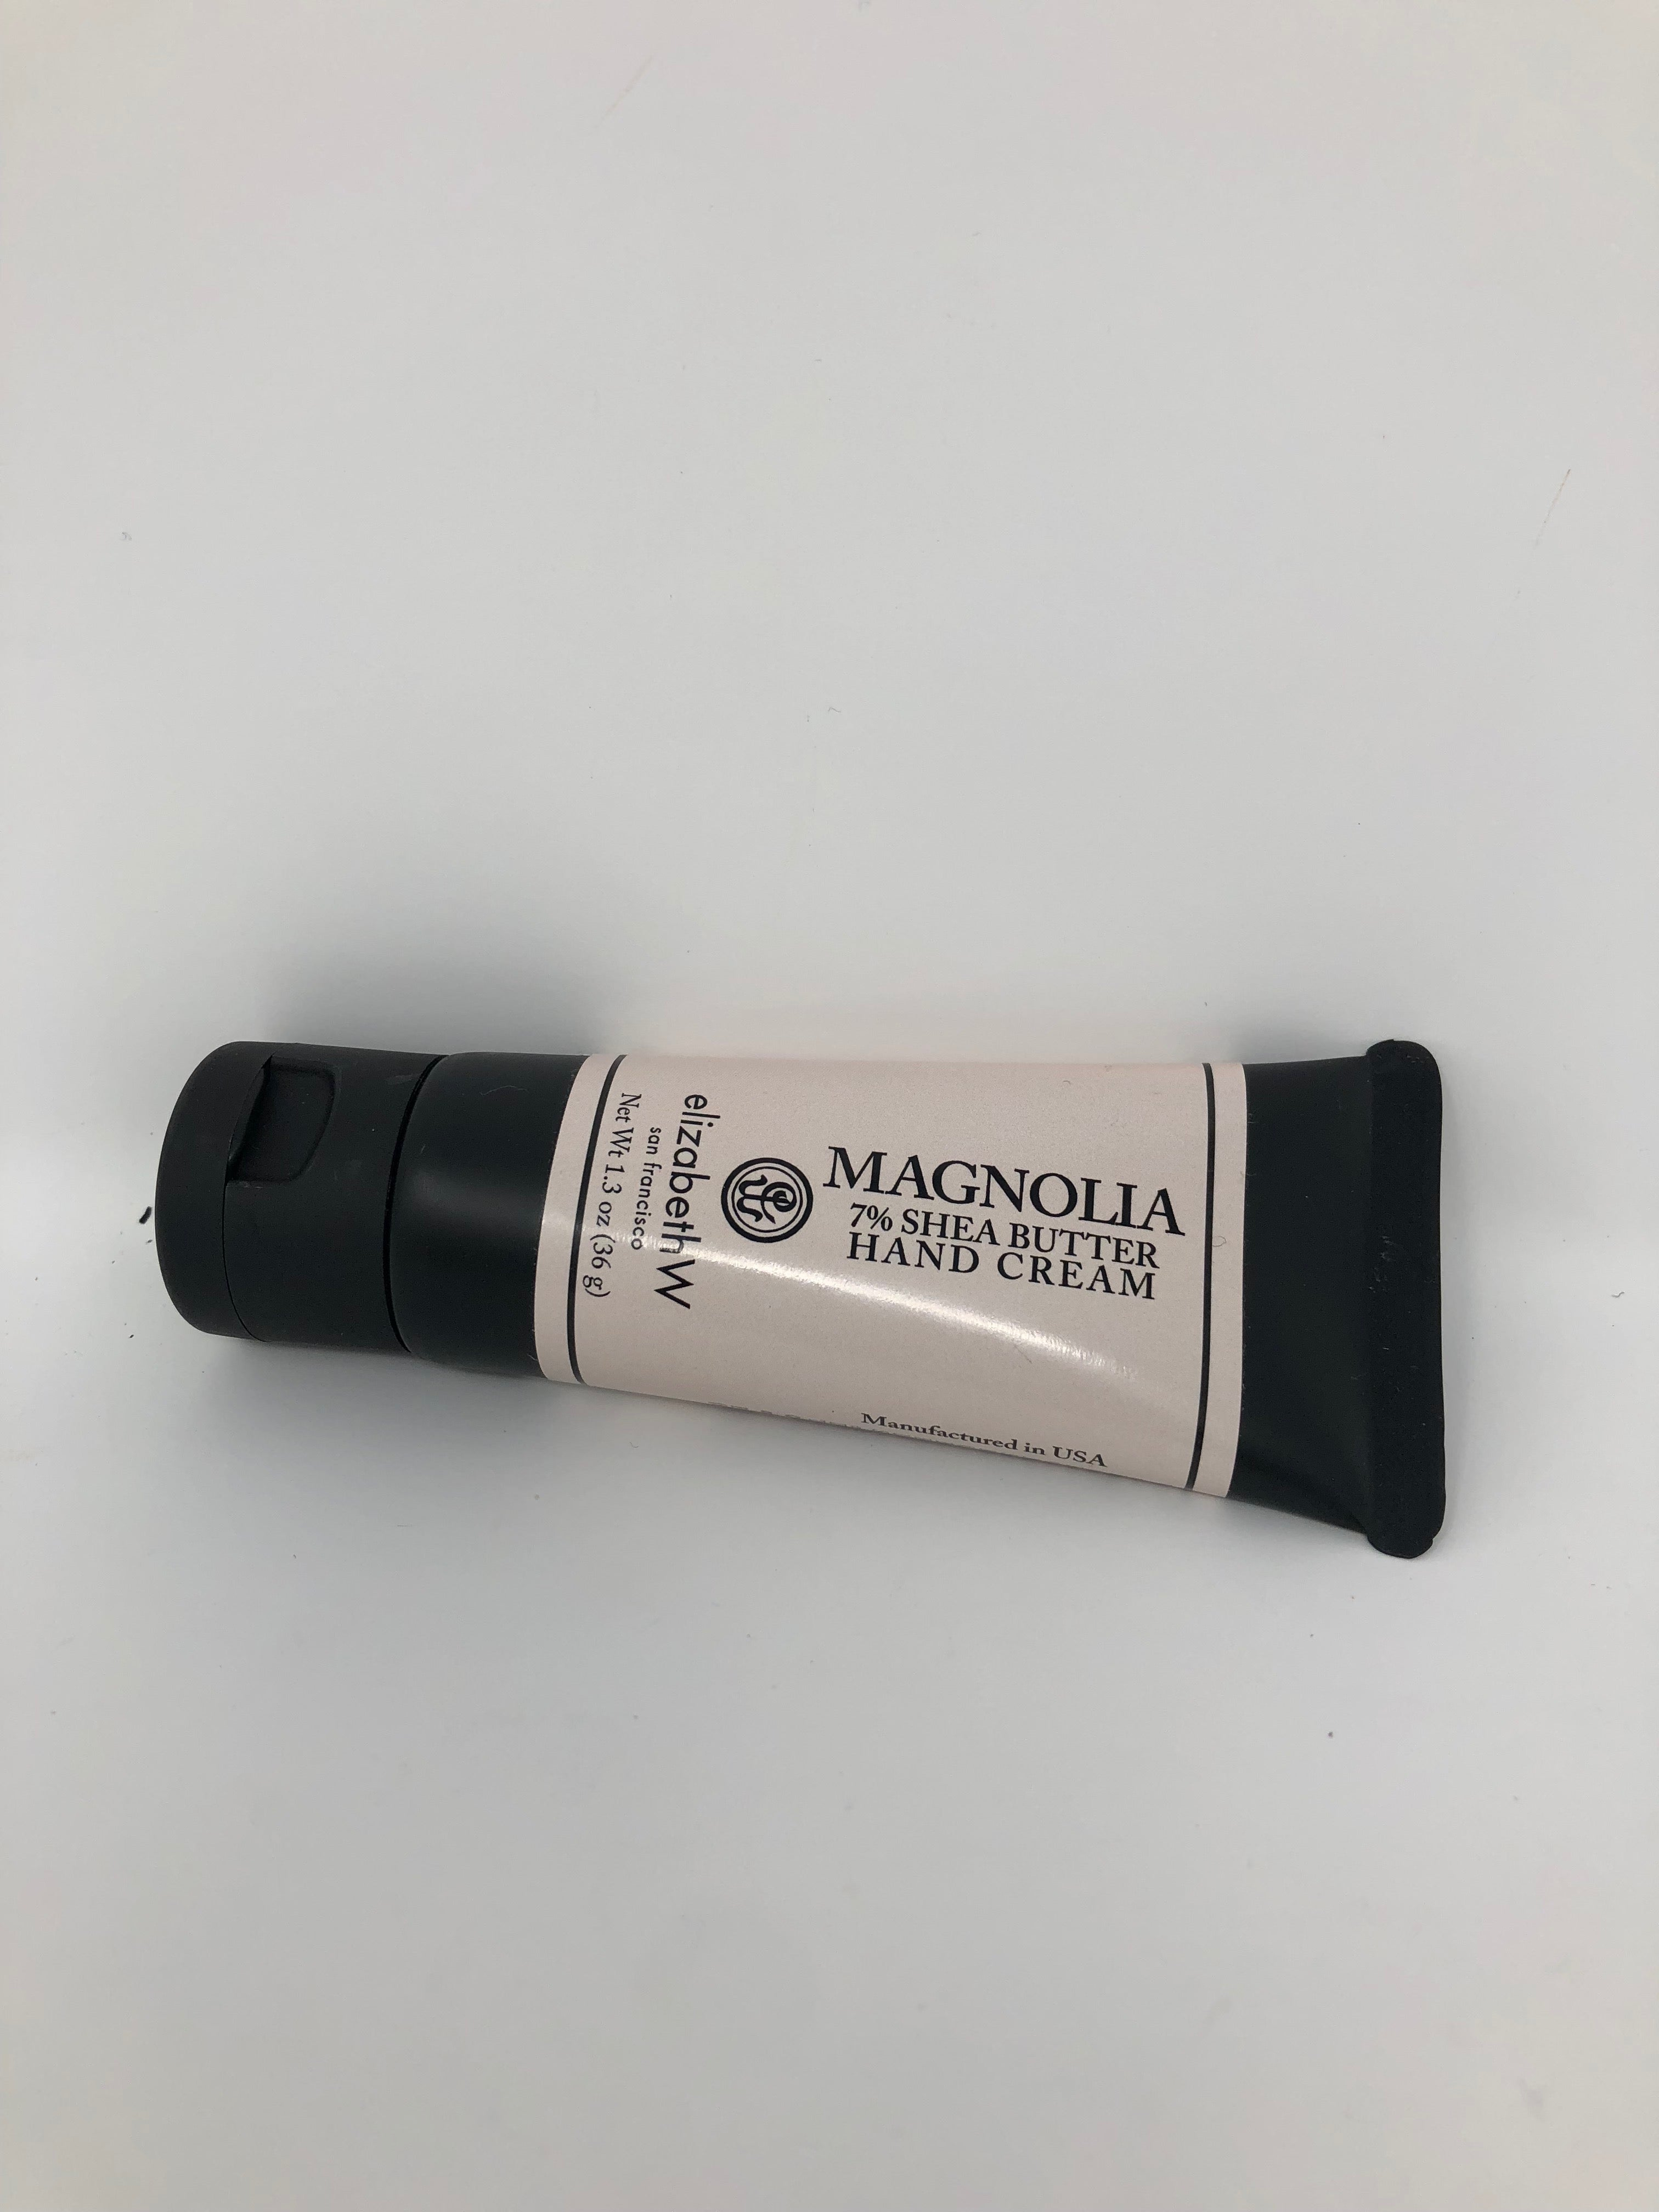 Magnolia Hand Cream Mini (1.3 oz)